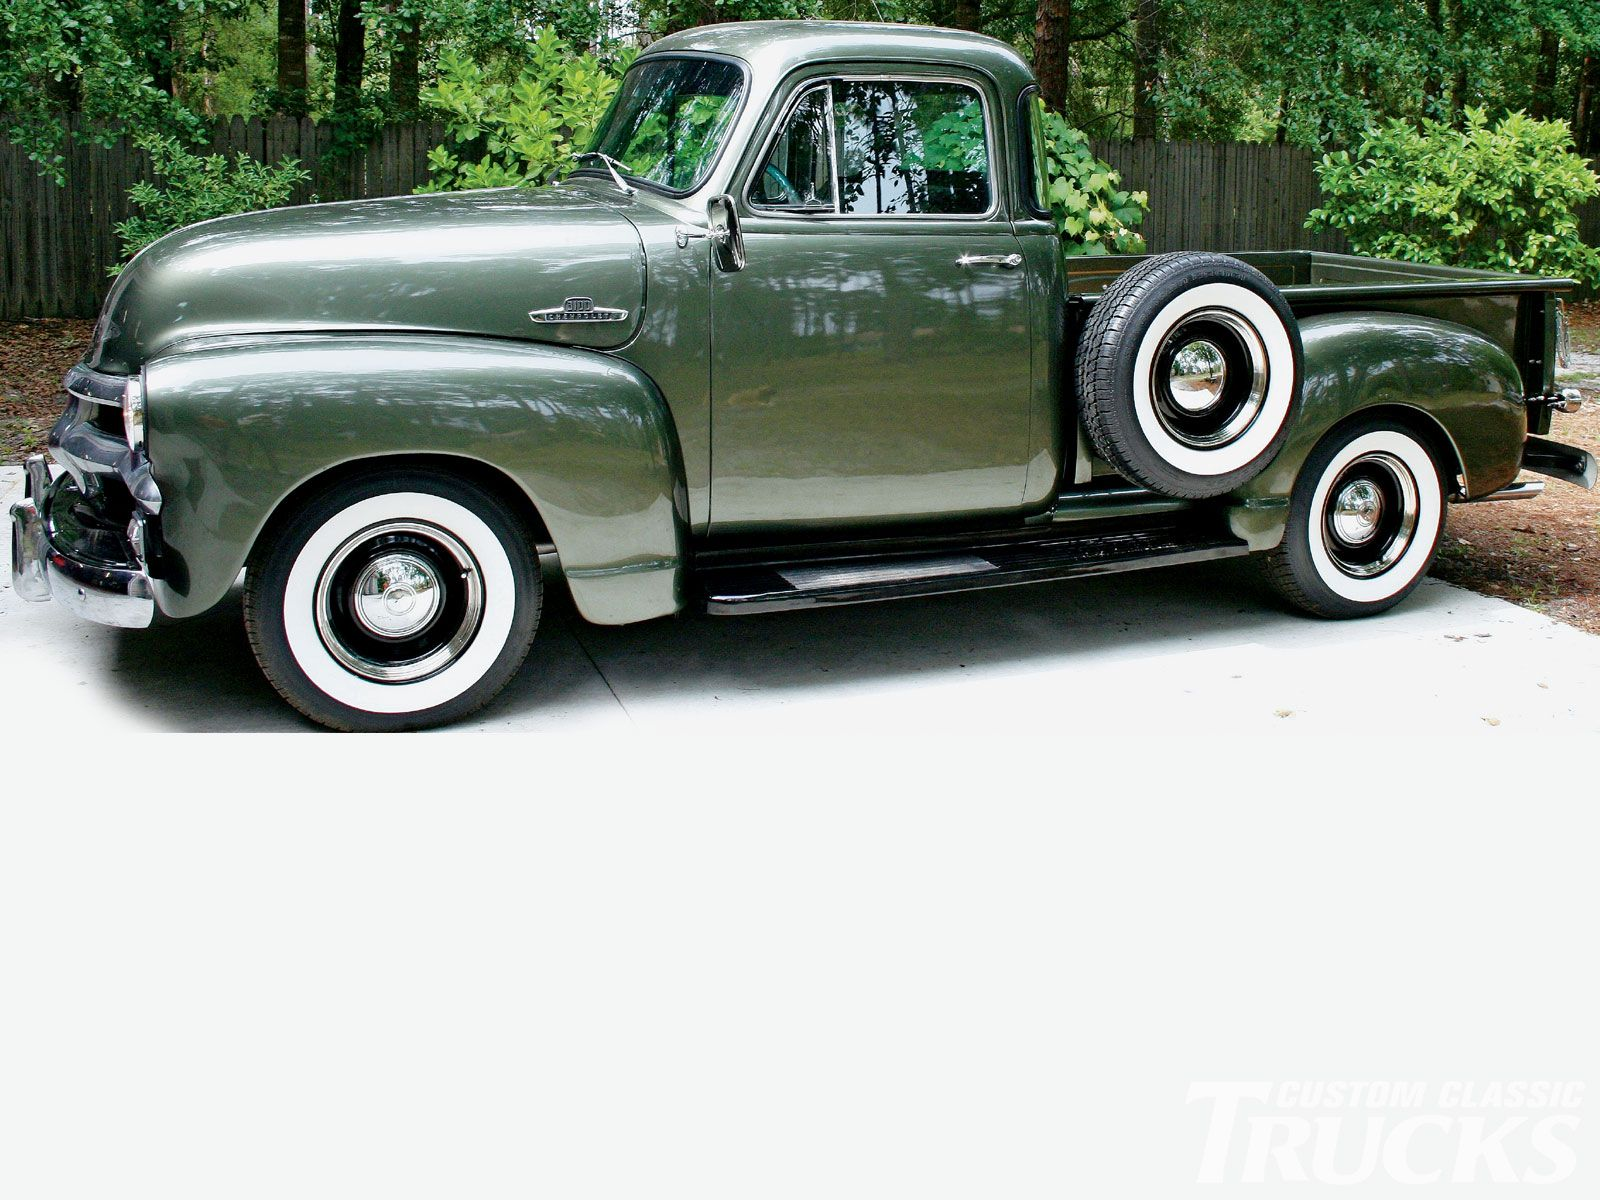 Looks Just Like My Boyfriend S Truck But His Is White 1955 Chevy 3100 1955 Chevy Classic Trucks Chevy 3100